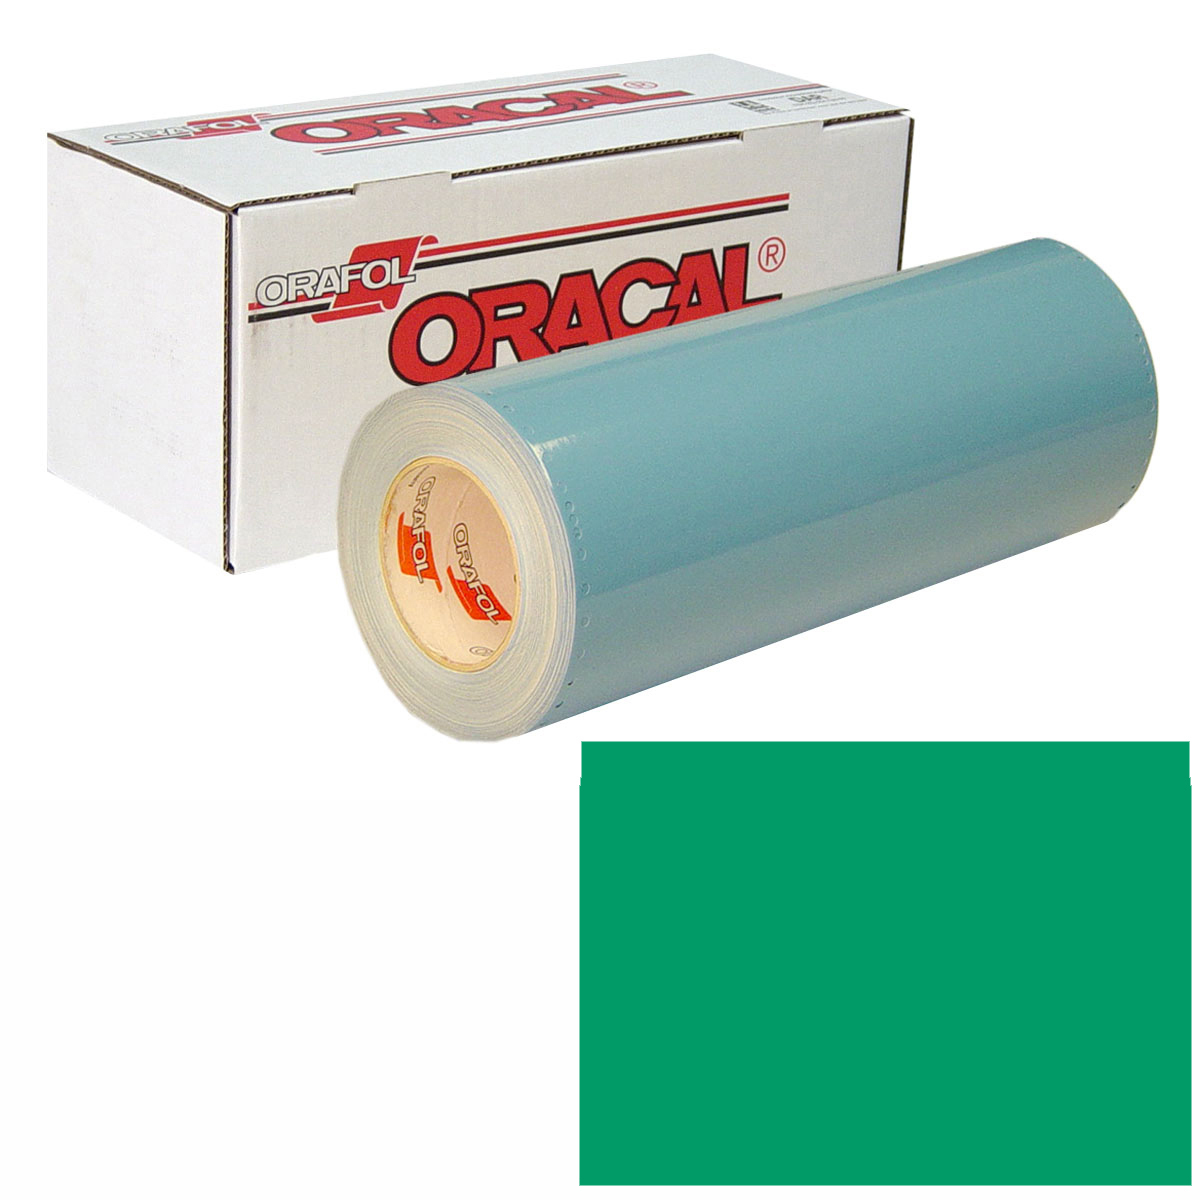 ORACAL 751 Unp 24in X 10yd 062 Light Green